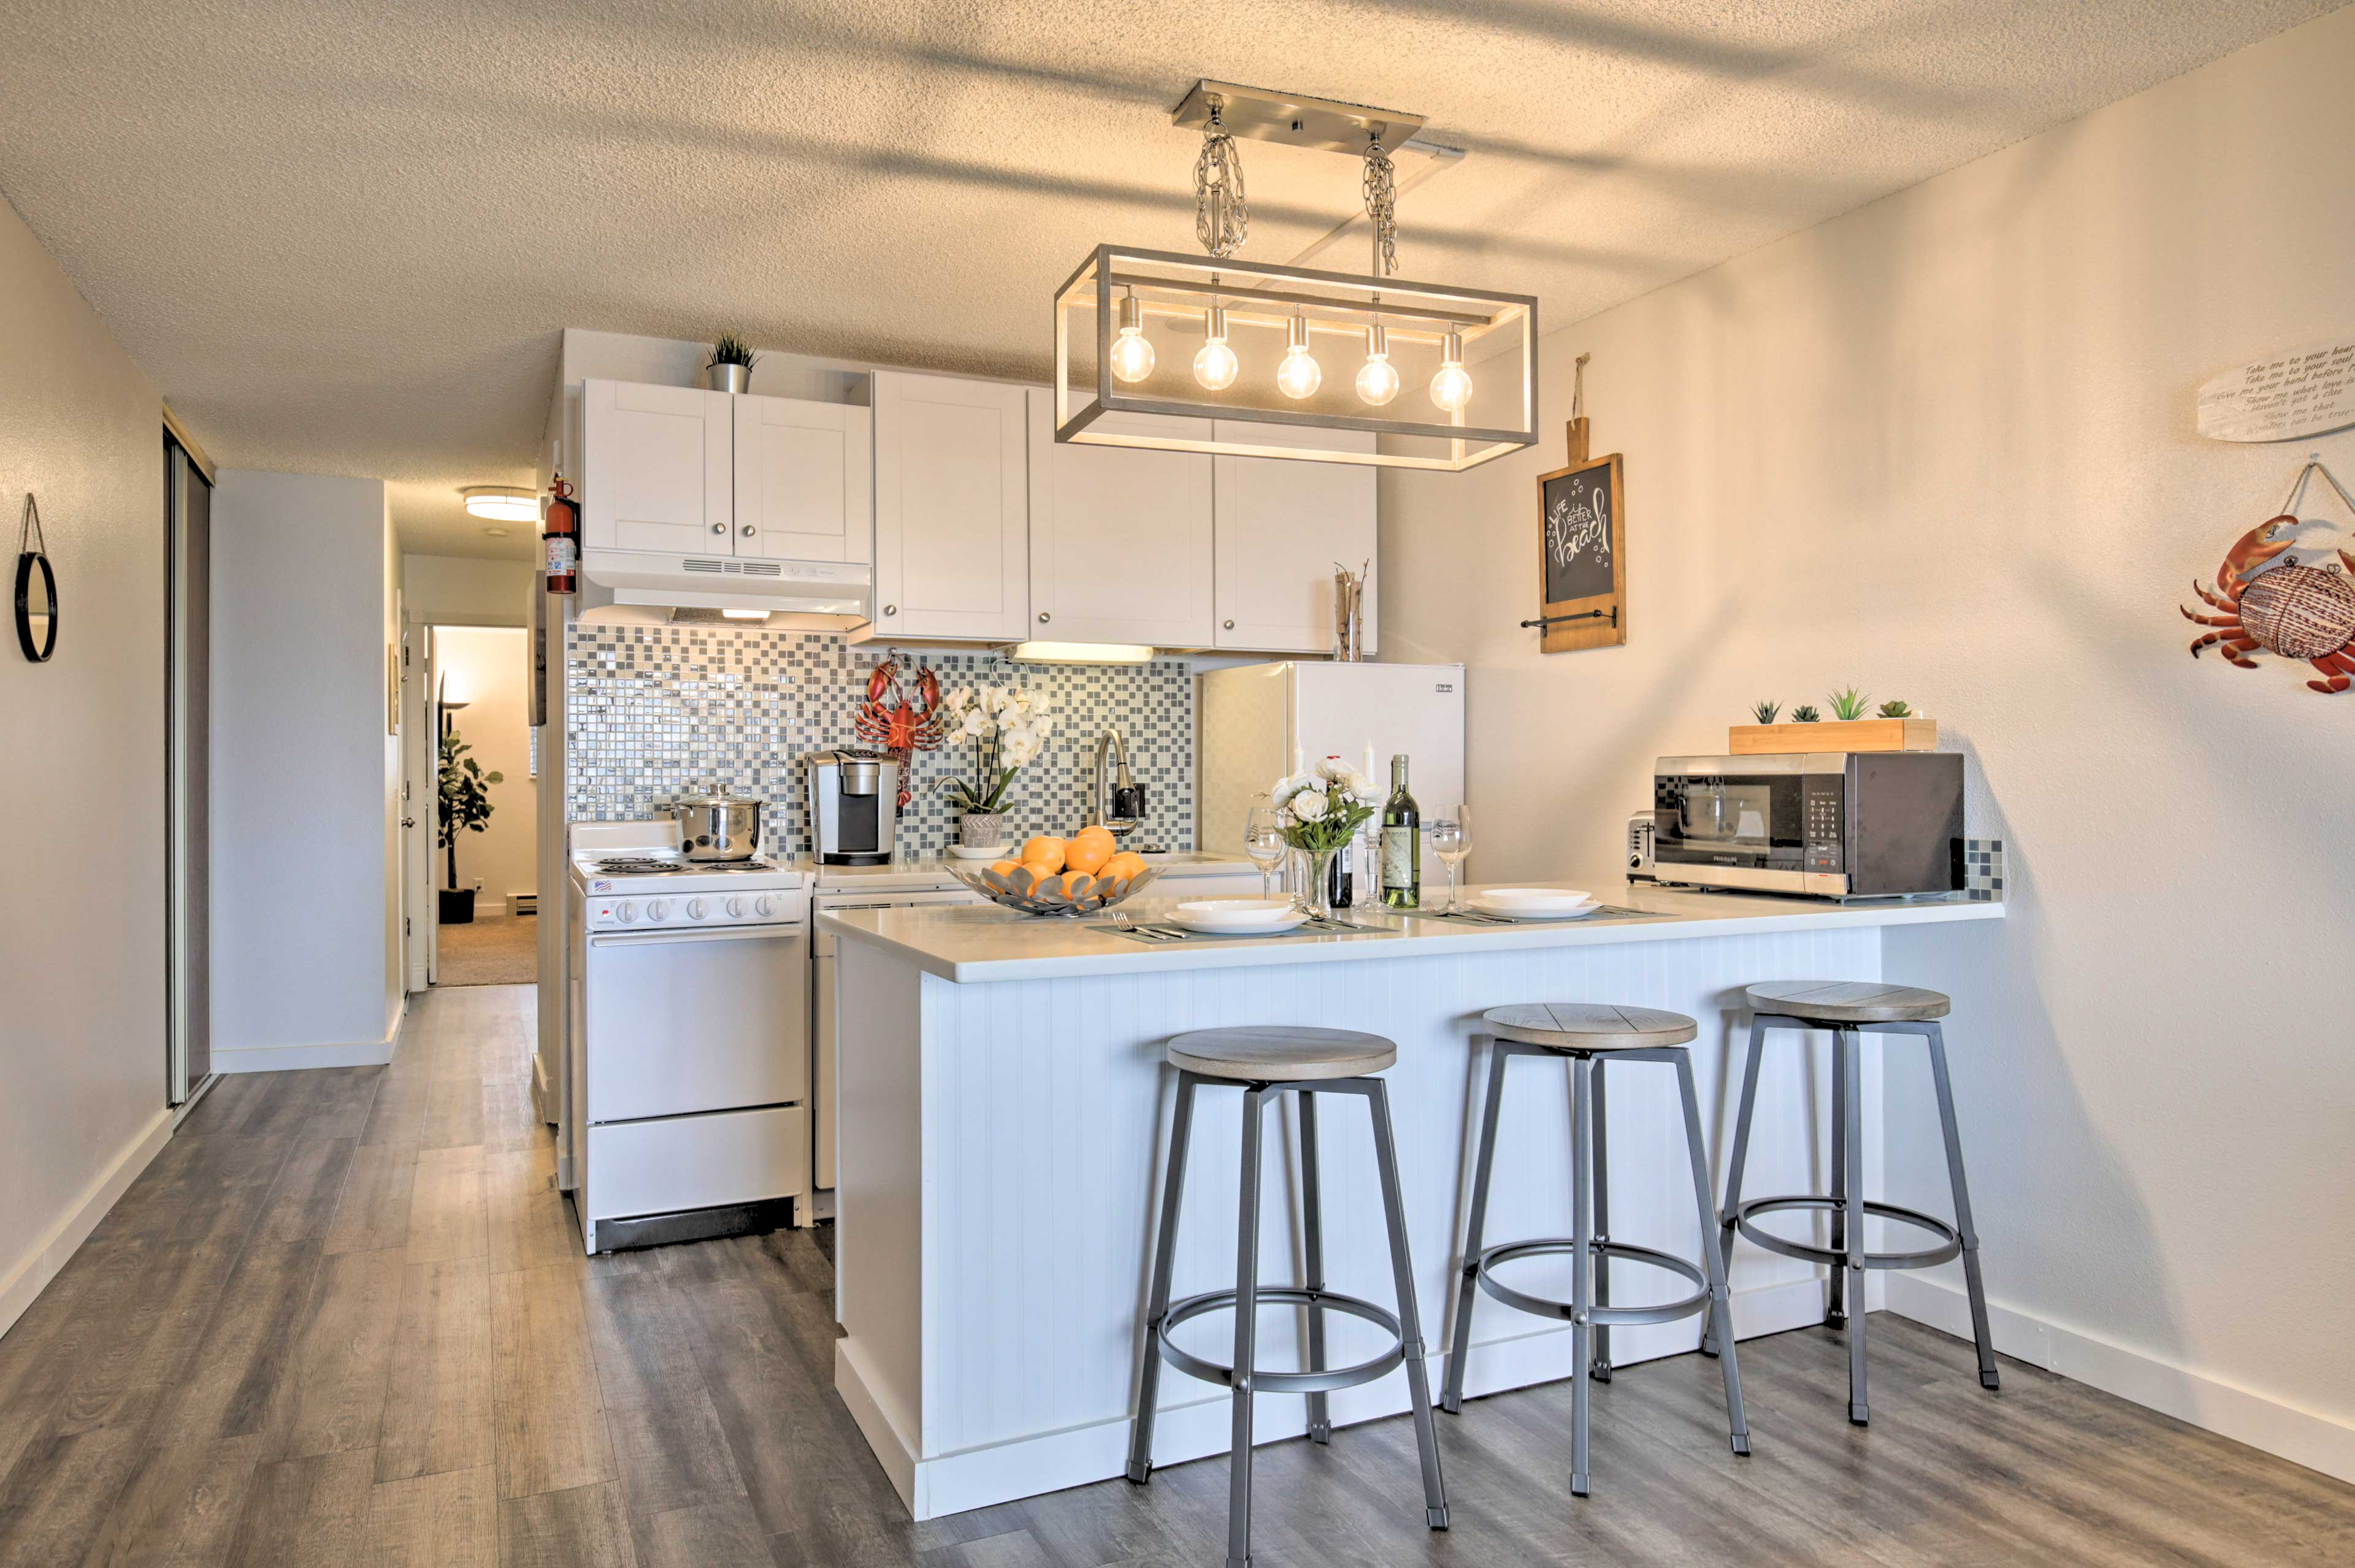 The 1-bedroom, 2-bath condo has been renovated to feature modern decor.